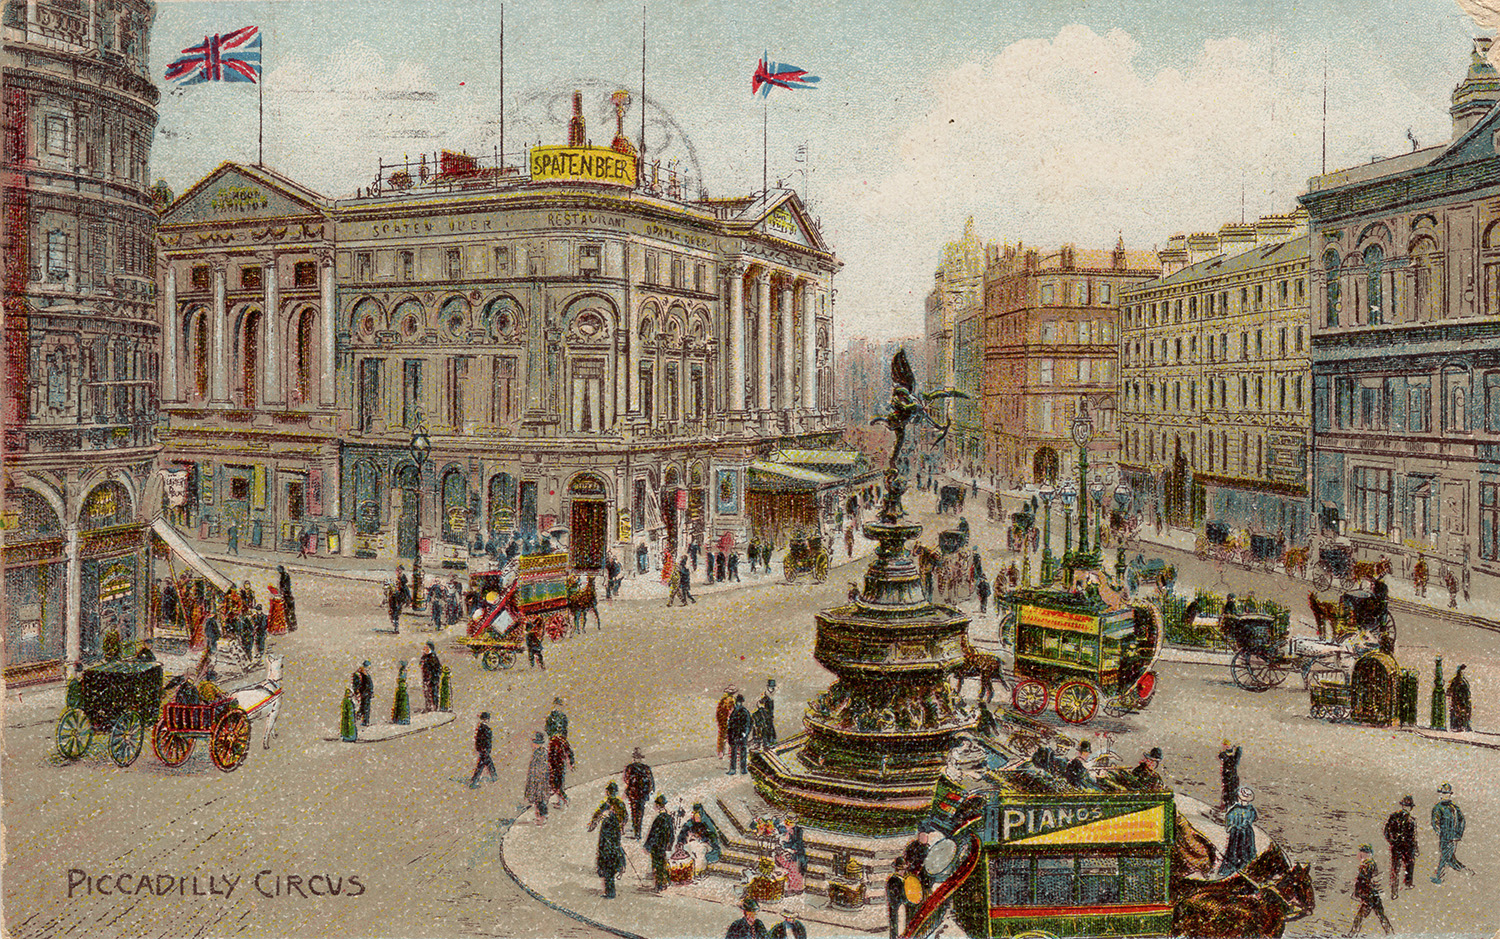 Piccadilly Circus, author's collection.